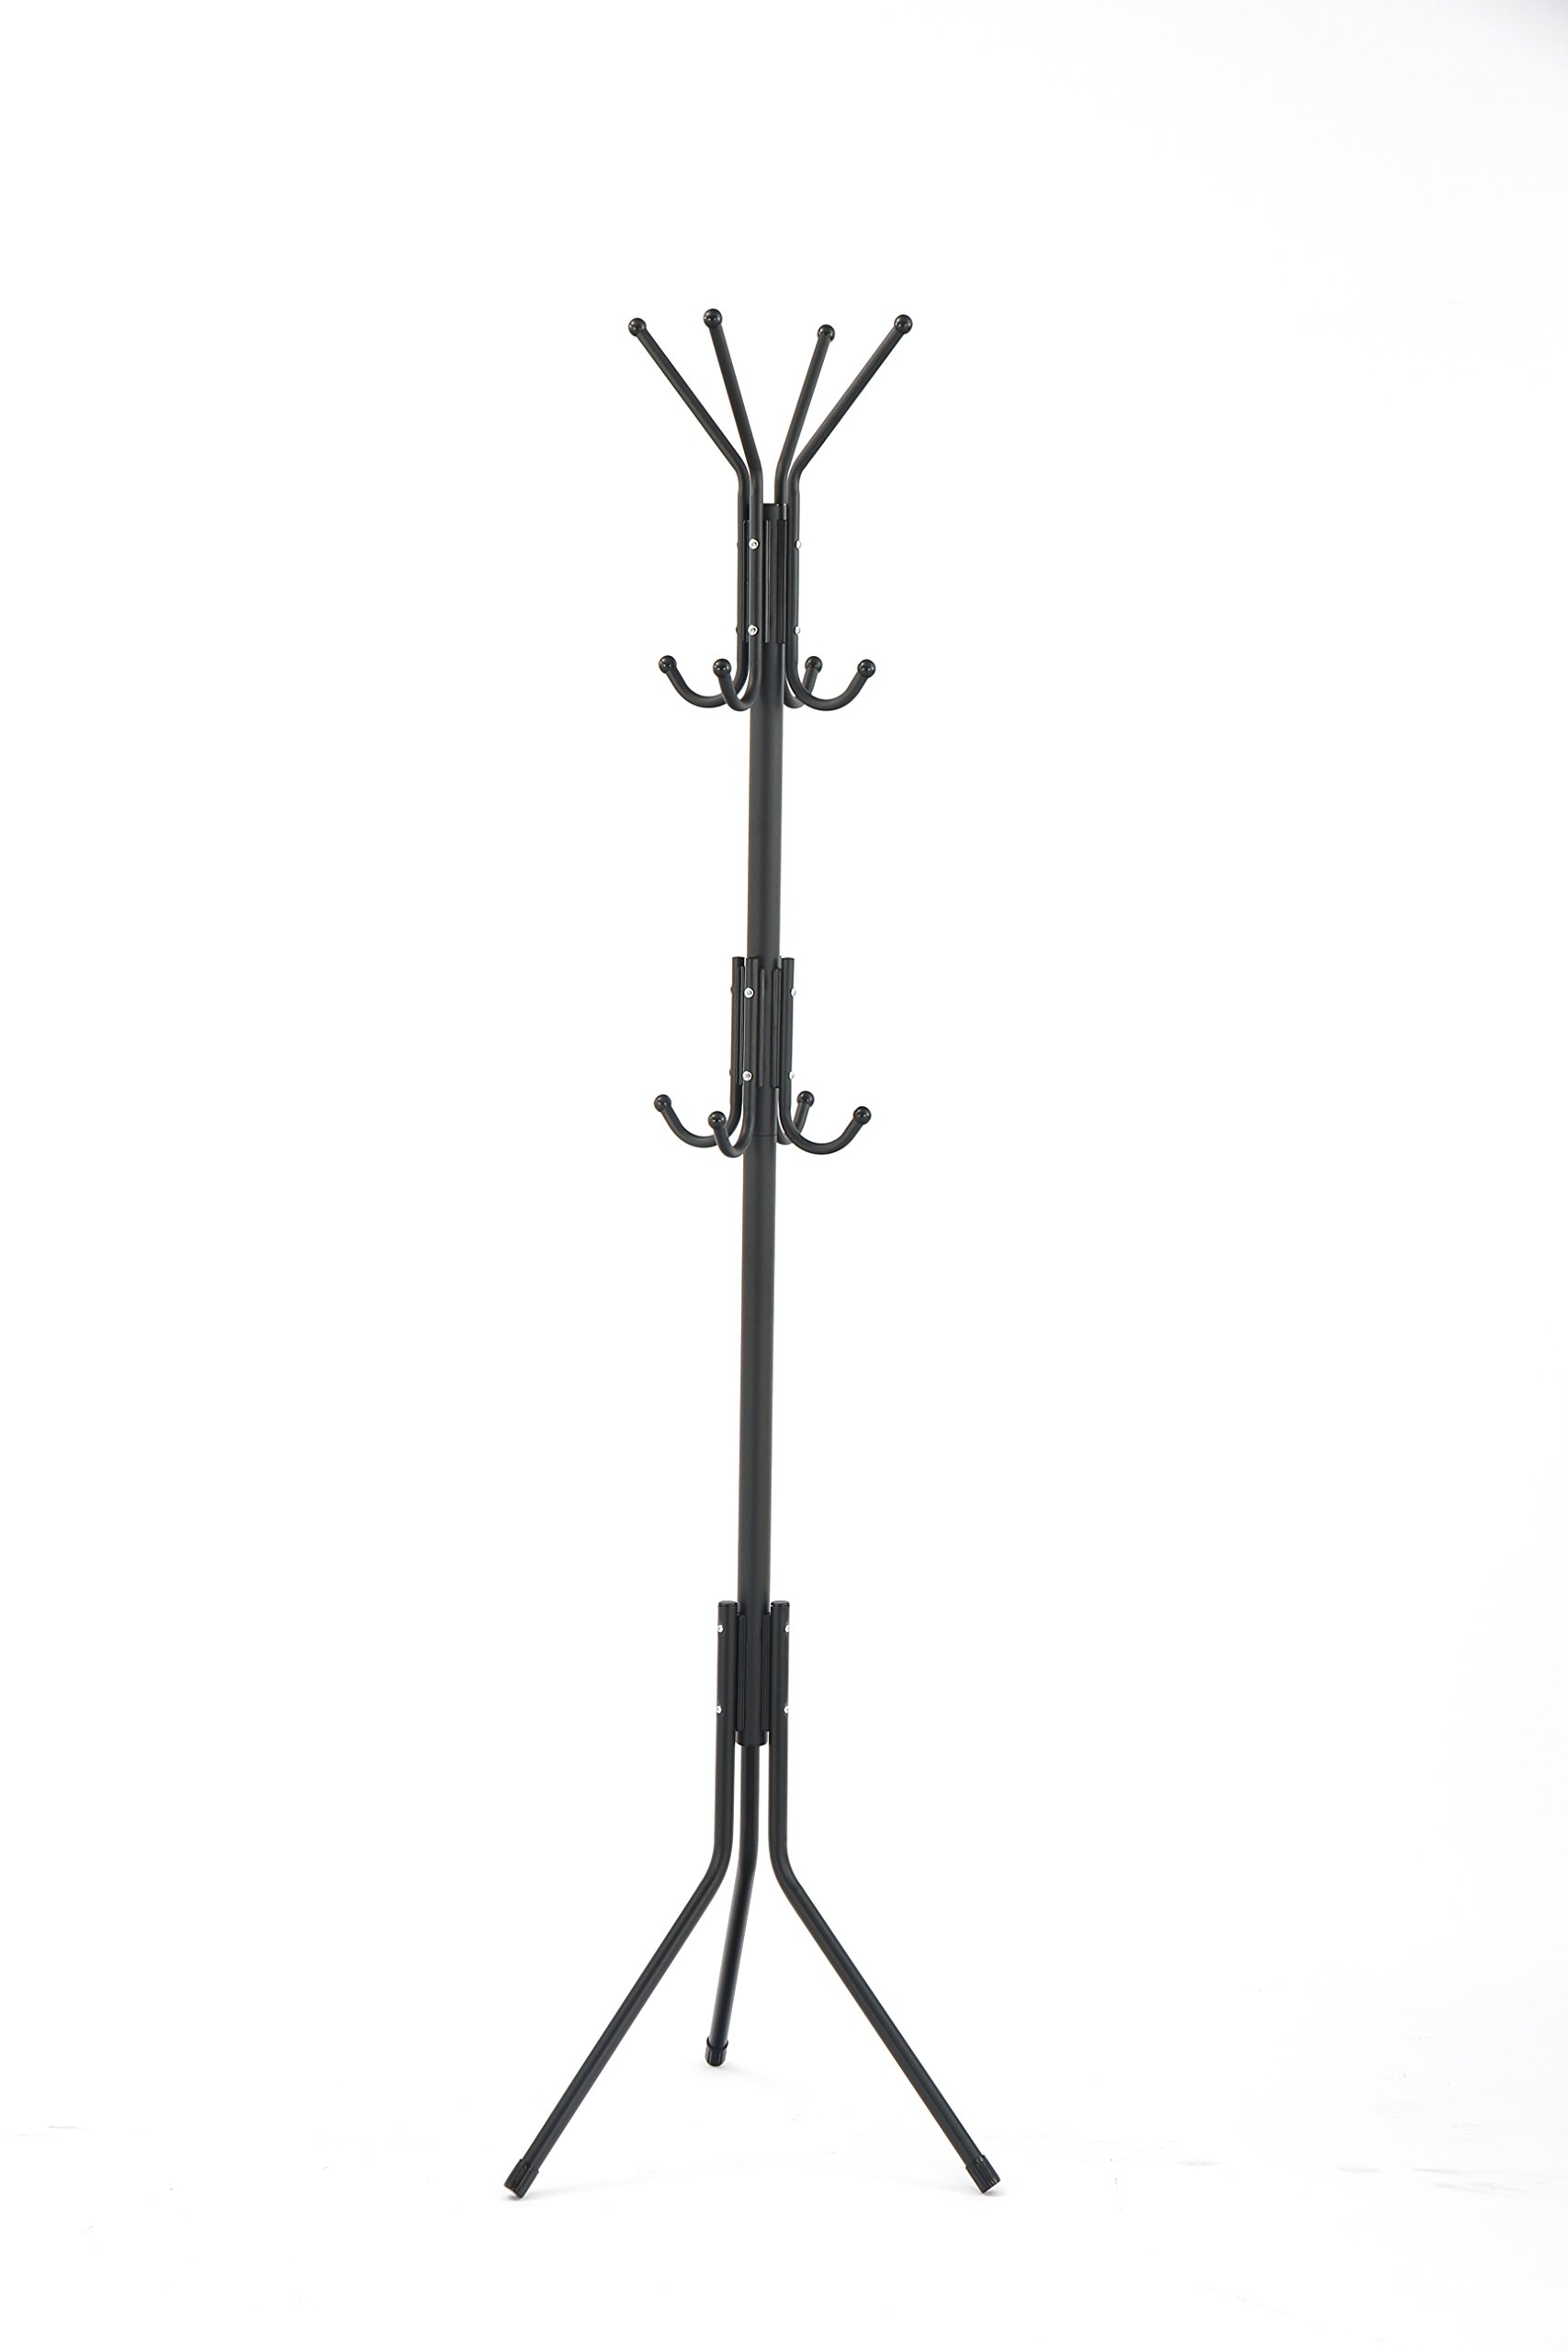 LCH Metal Coat Rack Free Display Stand Hall Tree with 3 Tiers and 12 Hooks for Clothes Scarves Purses and Hats